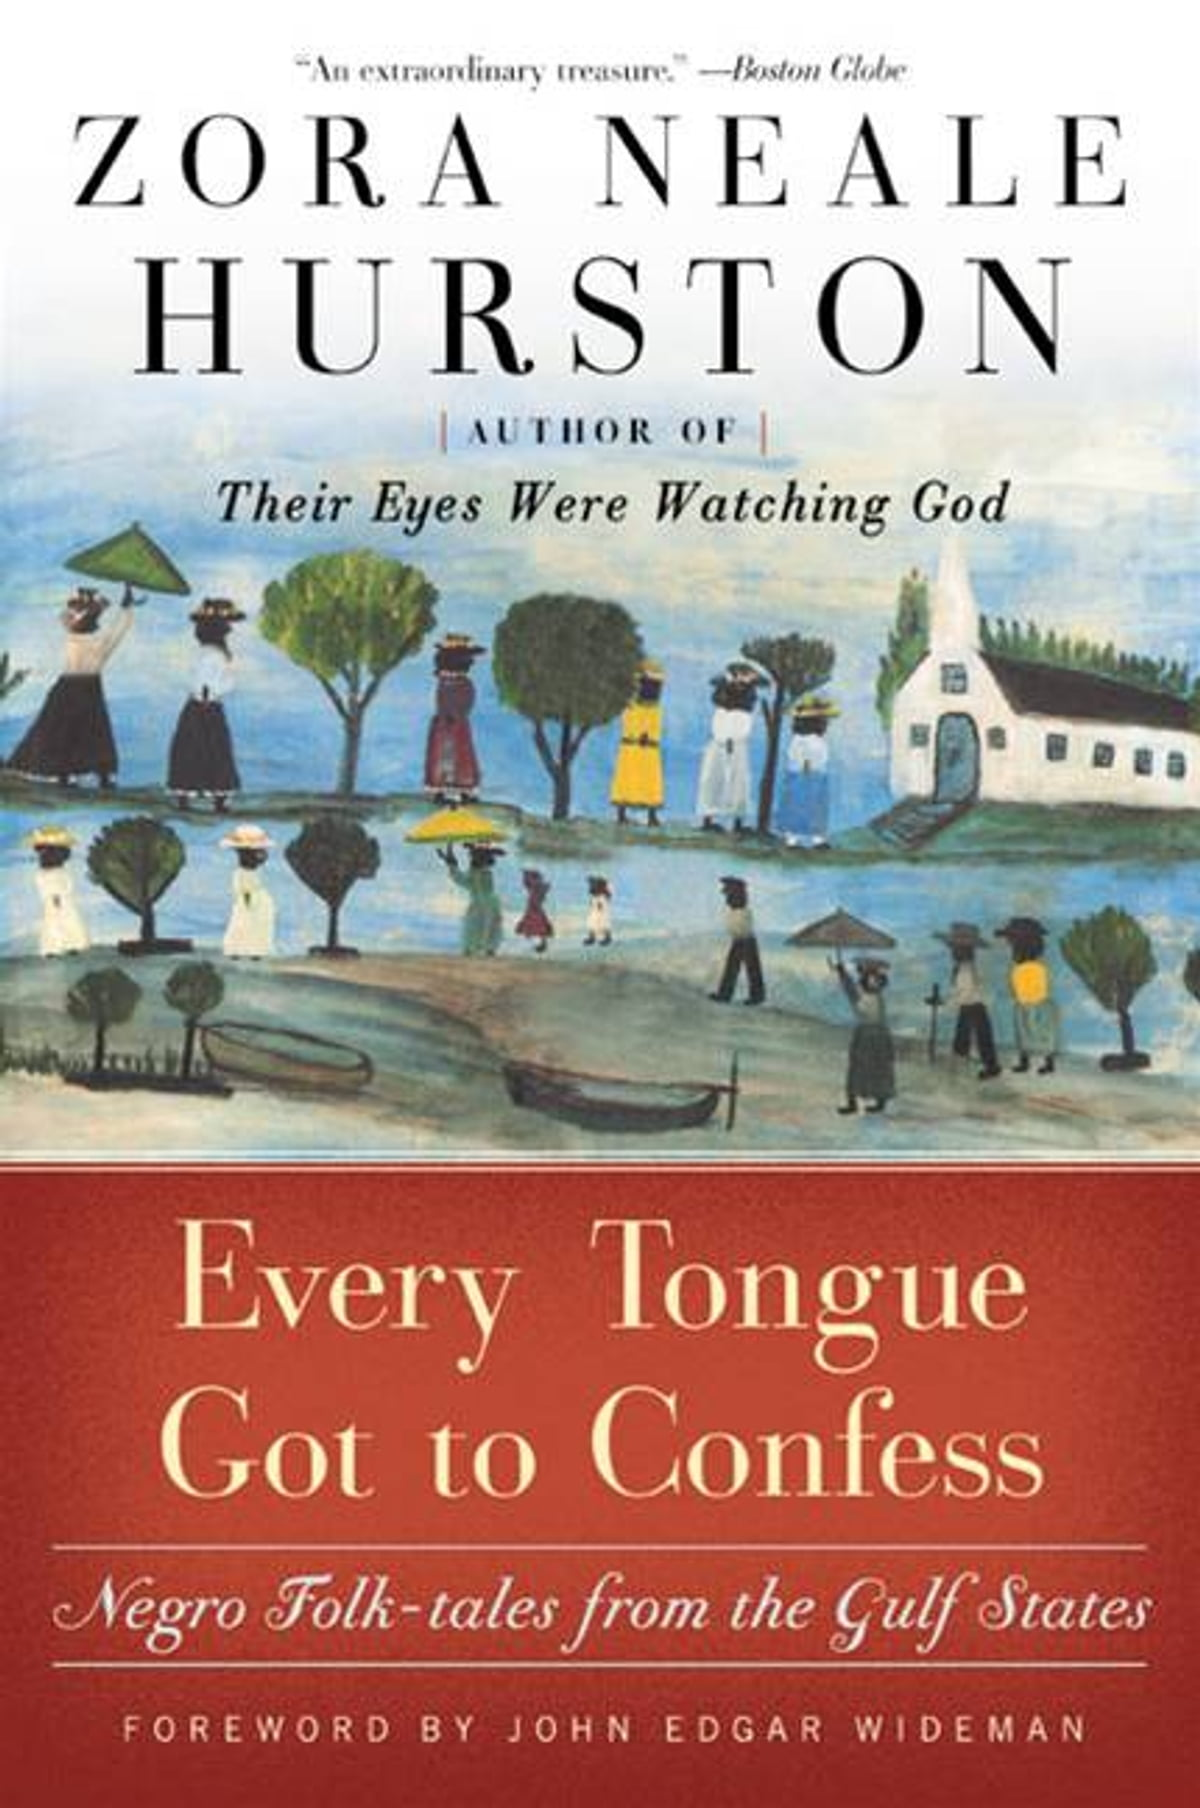 Every tongue got to confess ebook by zora hurston 9780061741807 every tongue got to confess ebook by zora hurston 9780061741807 rakuten kobo fandeluxe Document